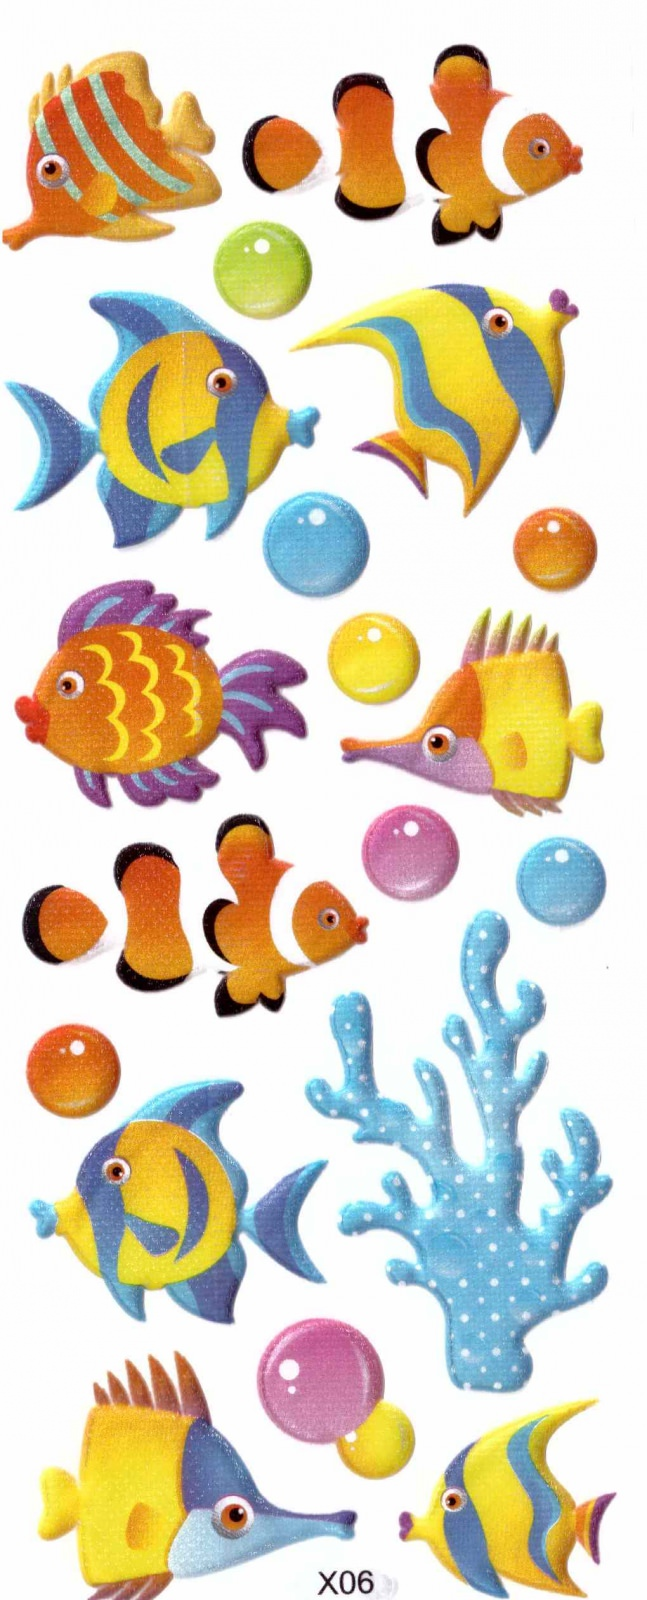 Sticker Fantaisie Poisson Paillette 3D